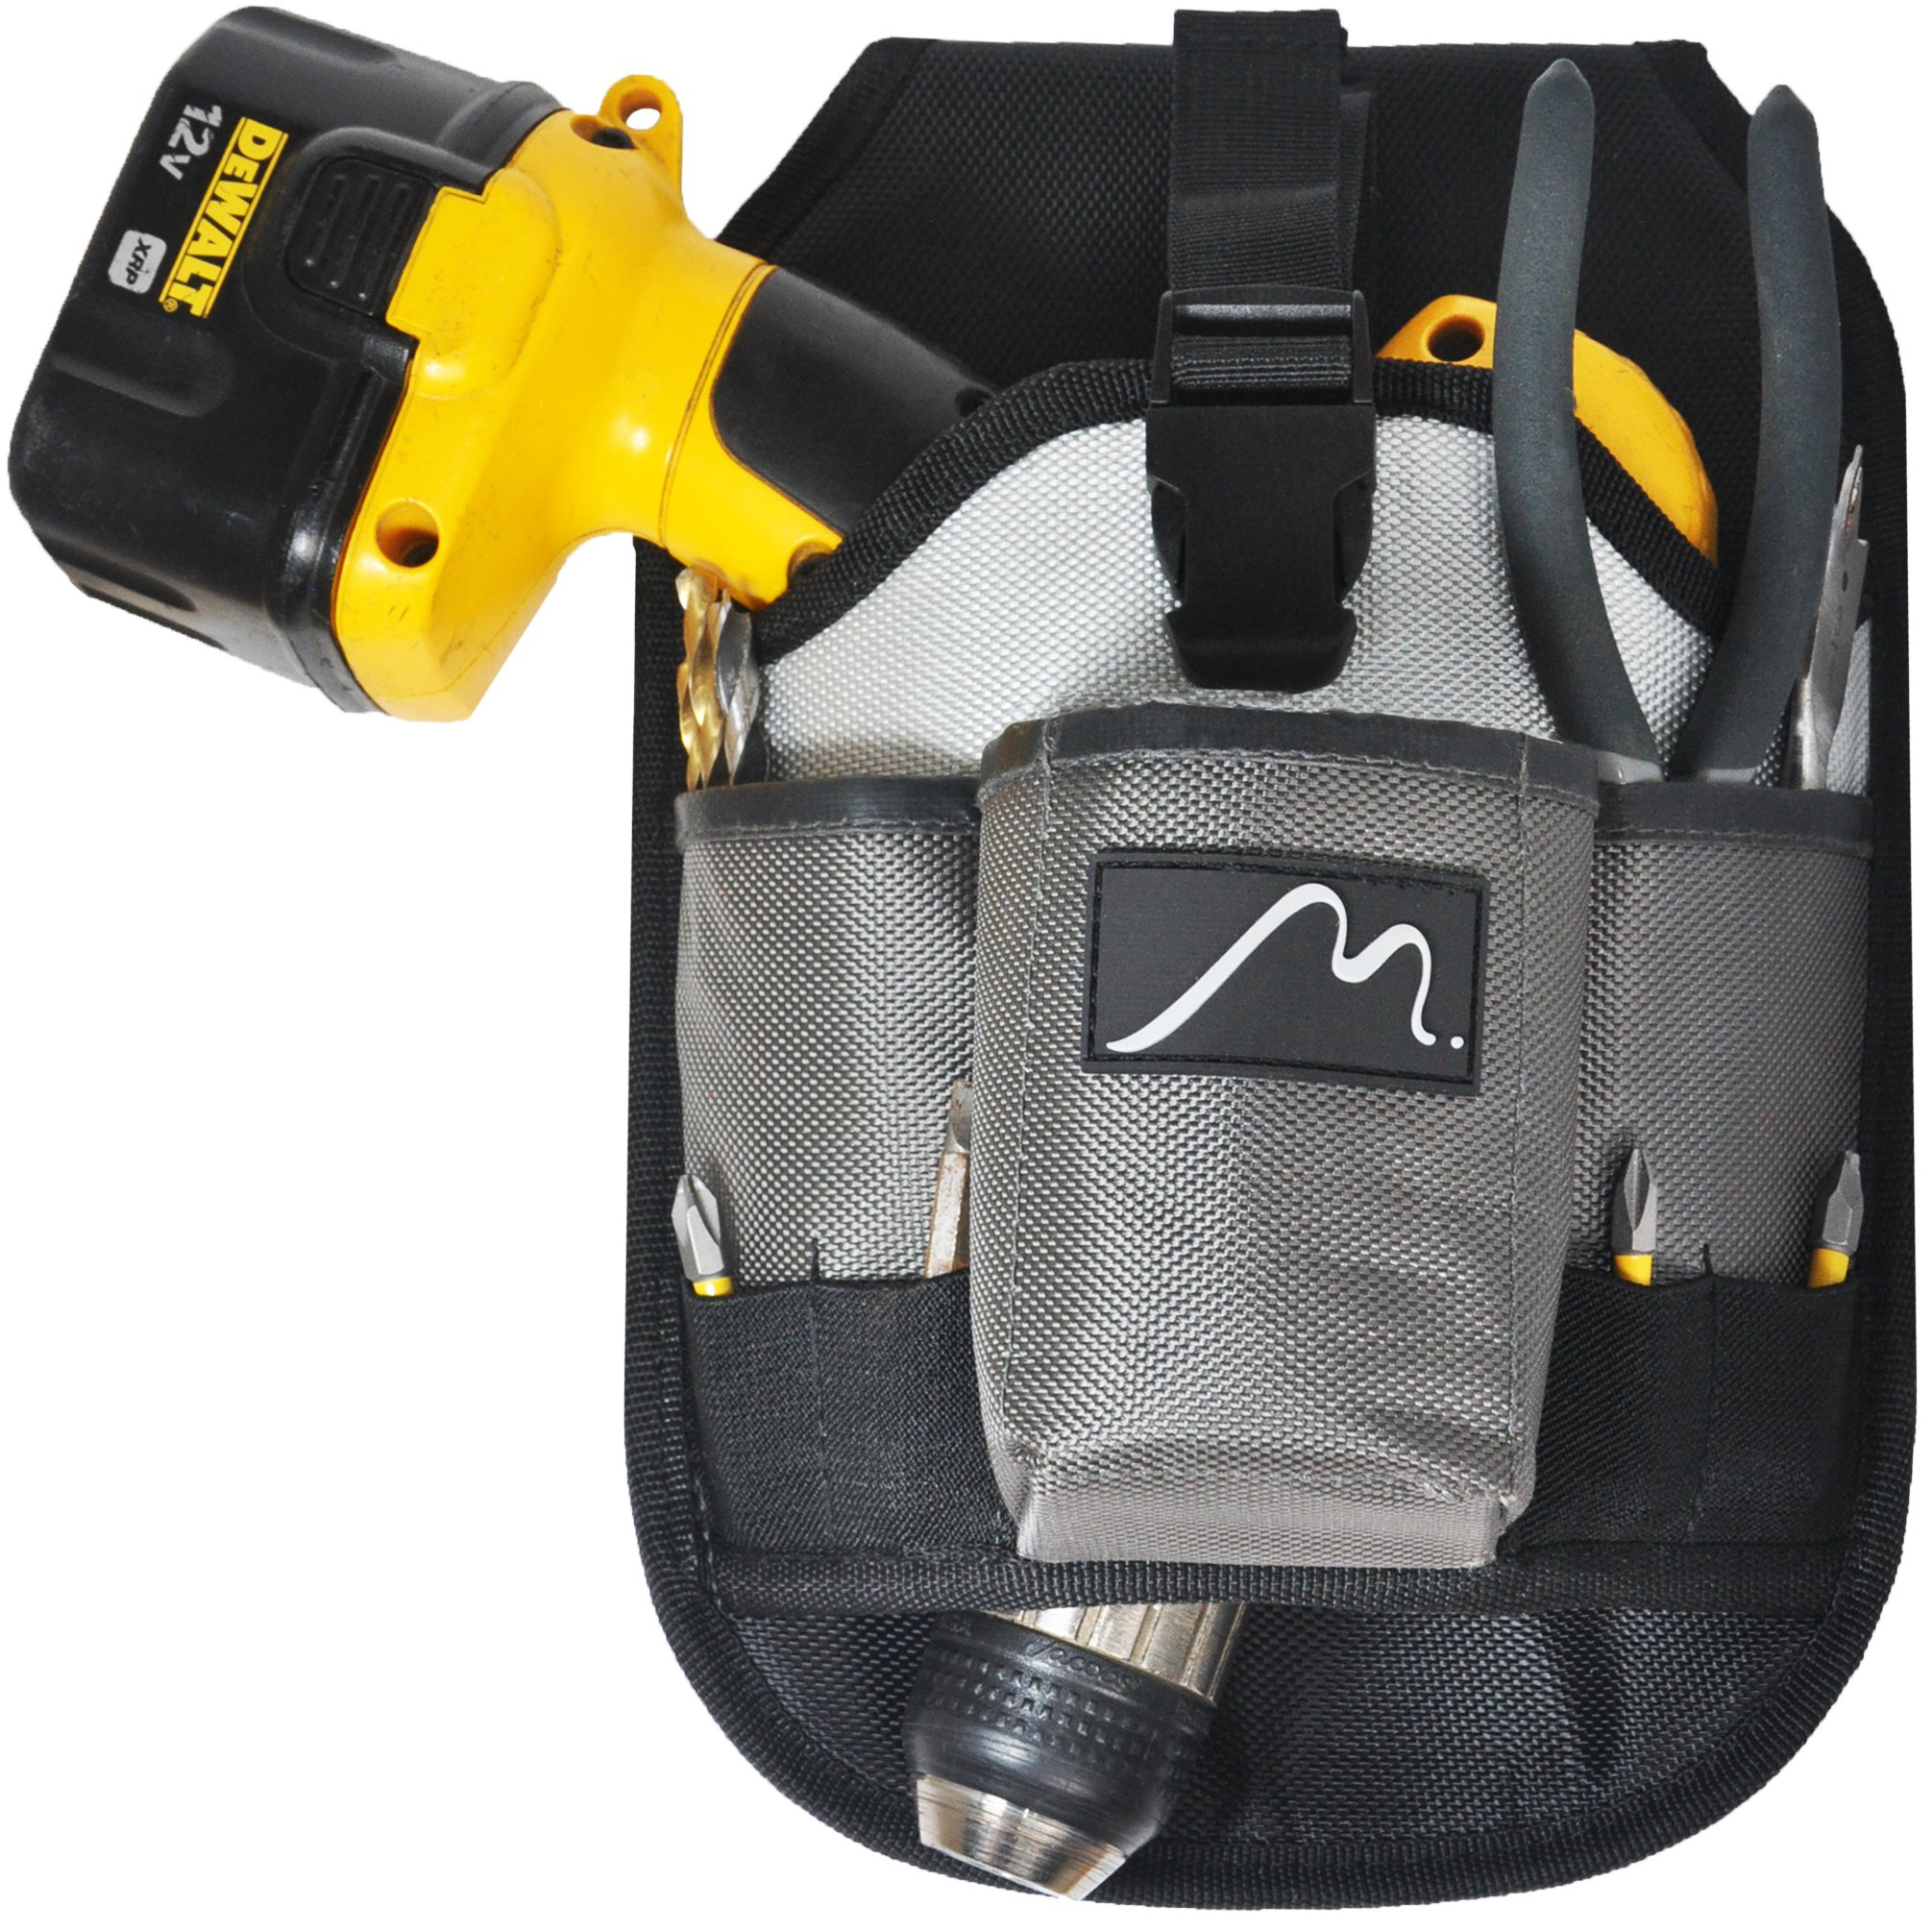 Cordless Drill Holster by Metier Life | Magnetic Organizer Pouches for Drill Bits and Extenders | Large Open Pocket for Screws and Accessories | Left Right Handed Use (Grey) by Metier Life (Image #2)